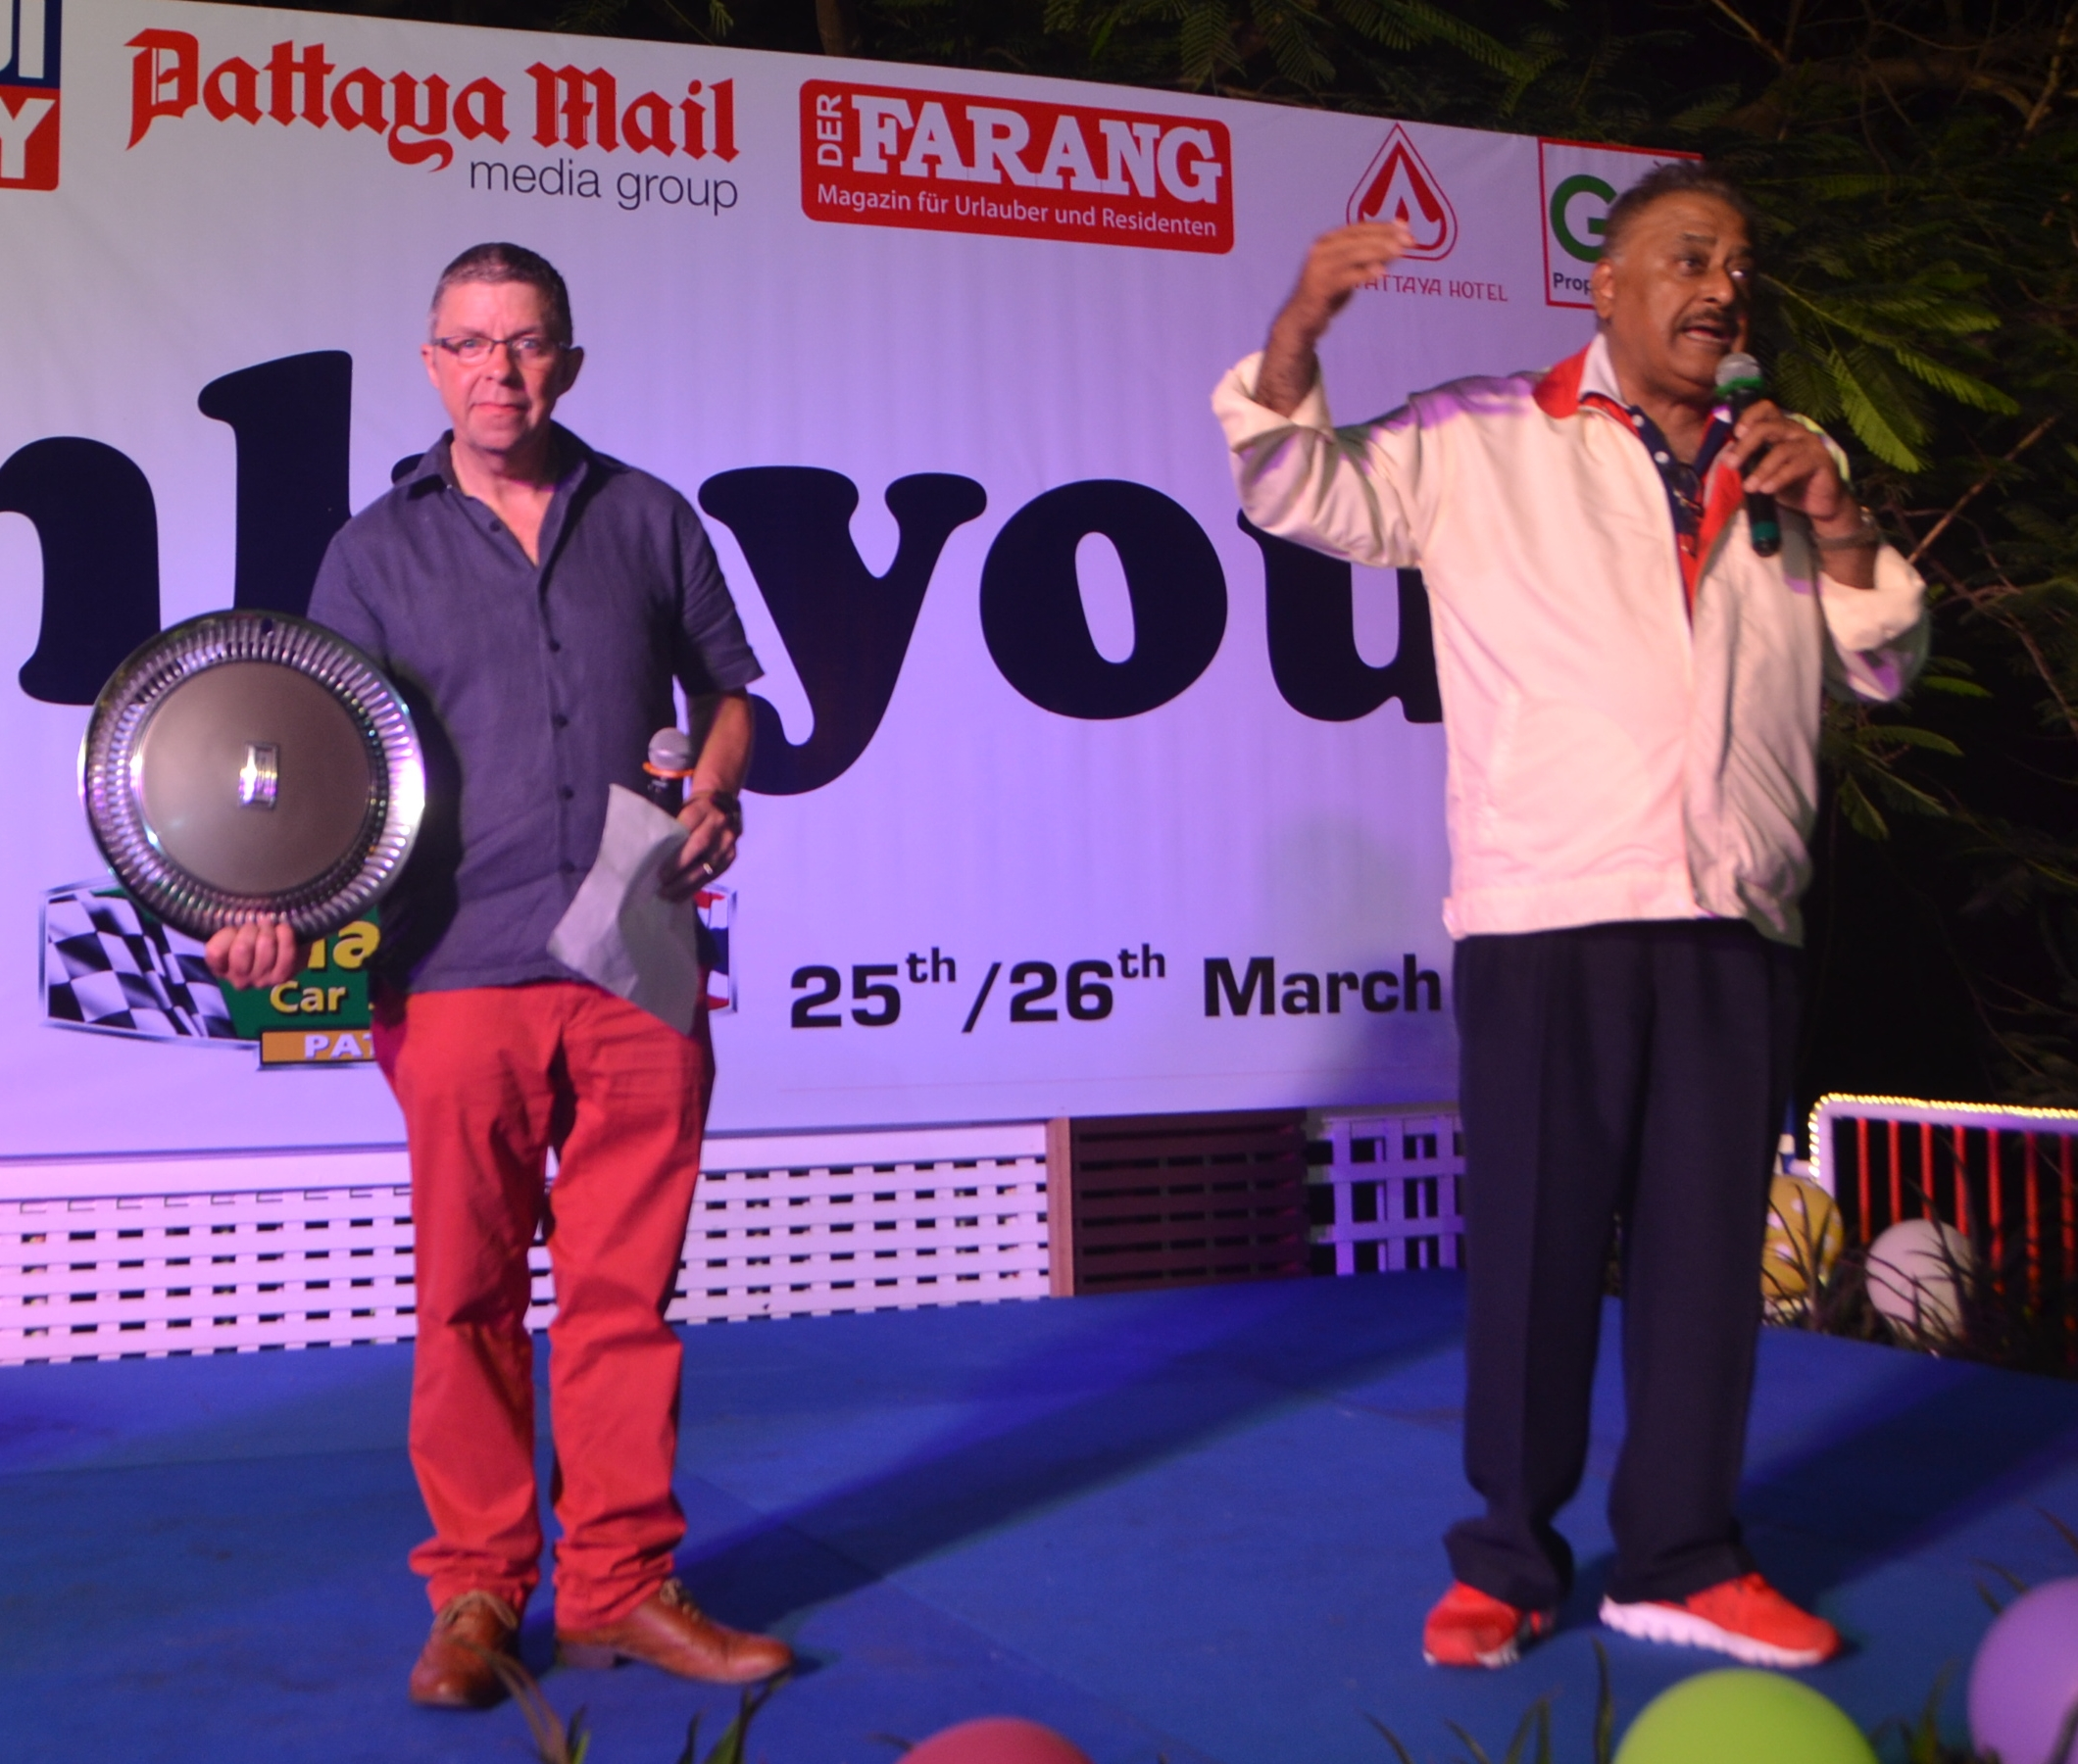 Paul Strachan and Peter Malhotra conduct the auction helping to raise over 100,000 baht.